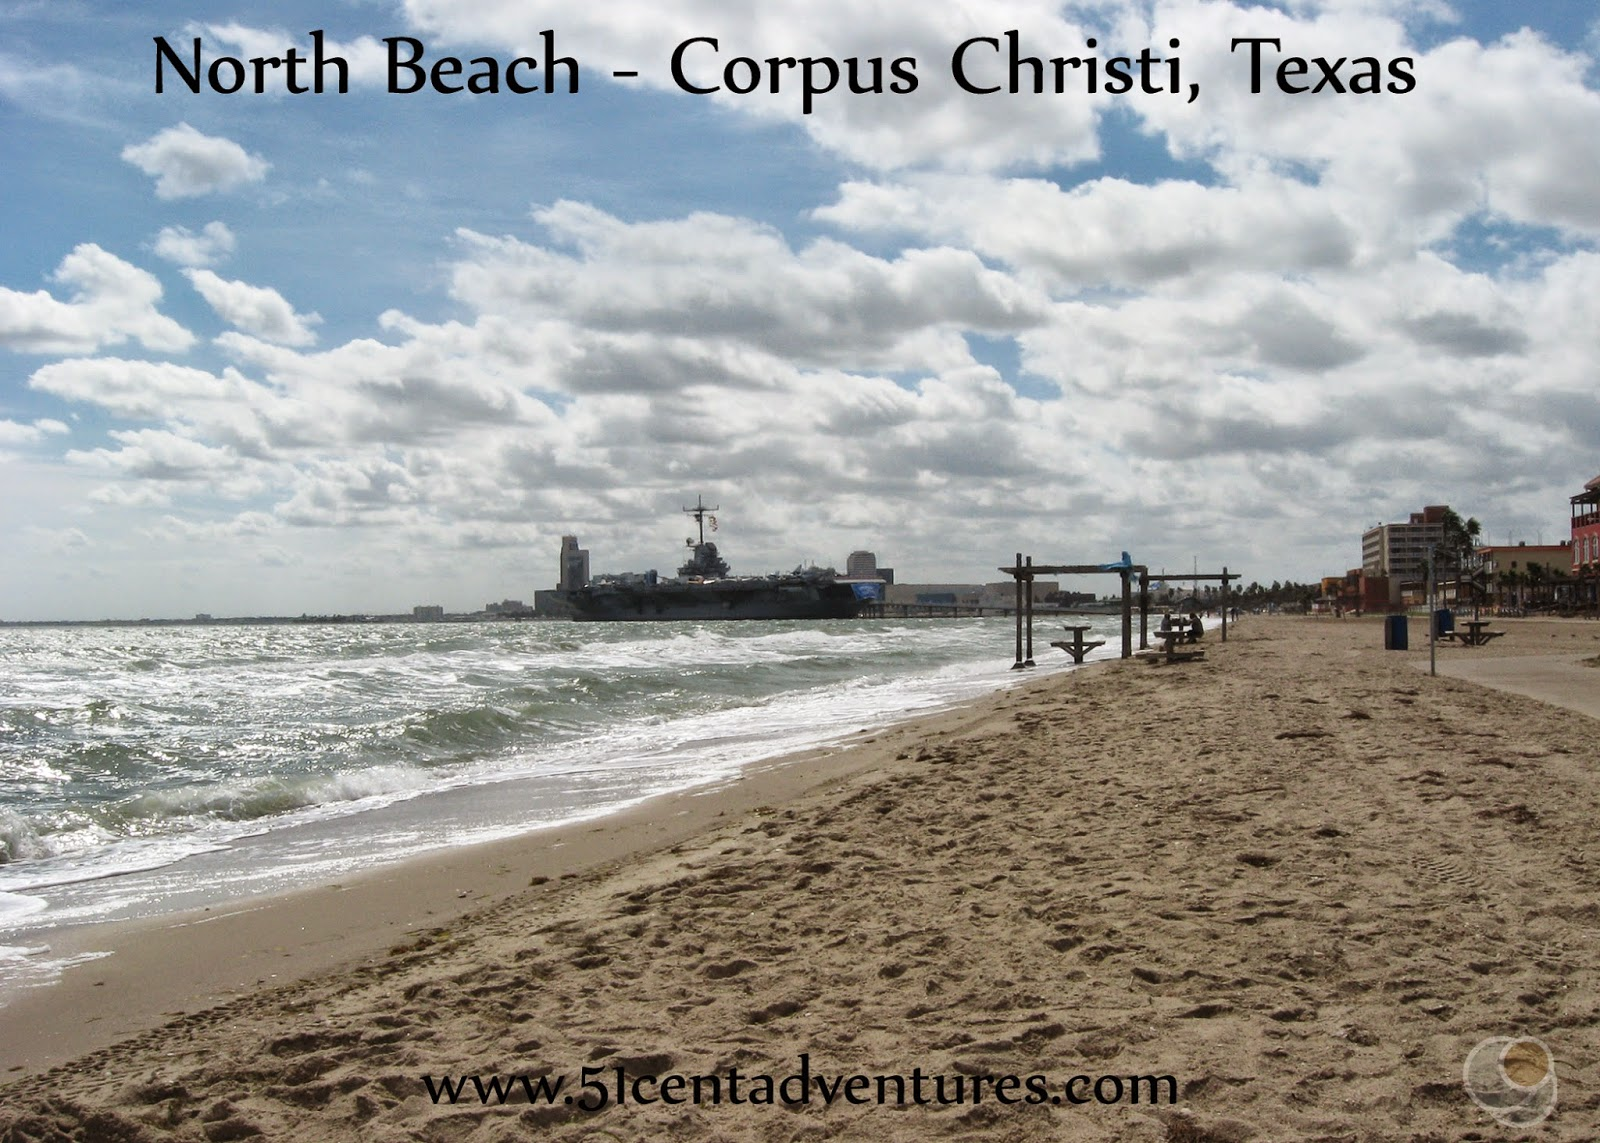 Description The North Beach Area Of Corpus Christi Is A Small Section Land Between Shipping Channel And Nueces Bay